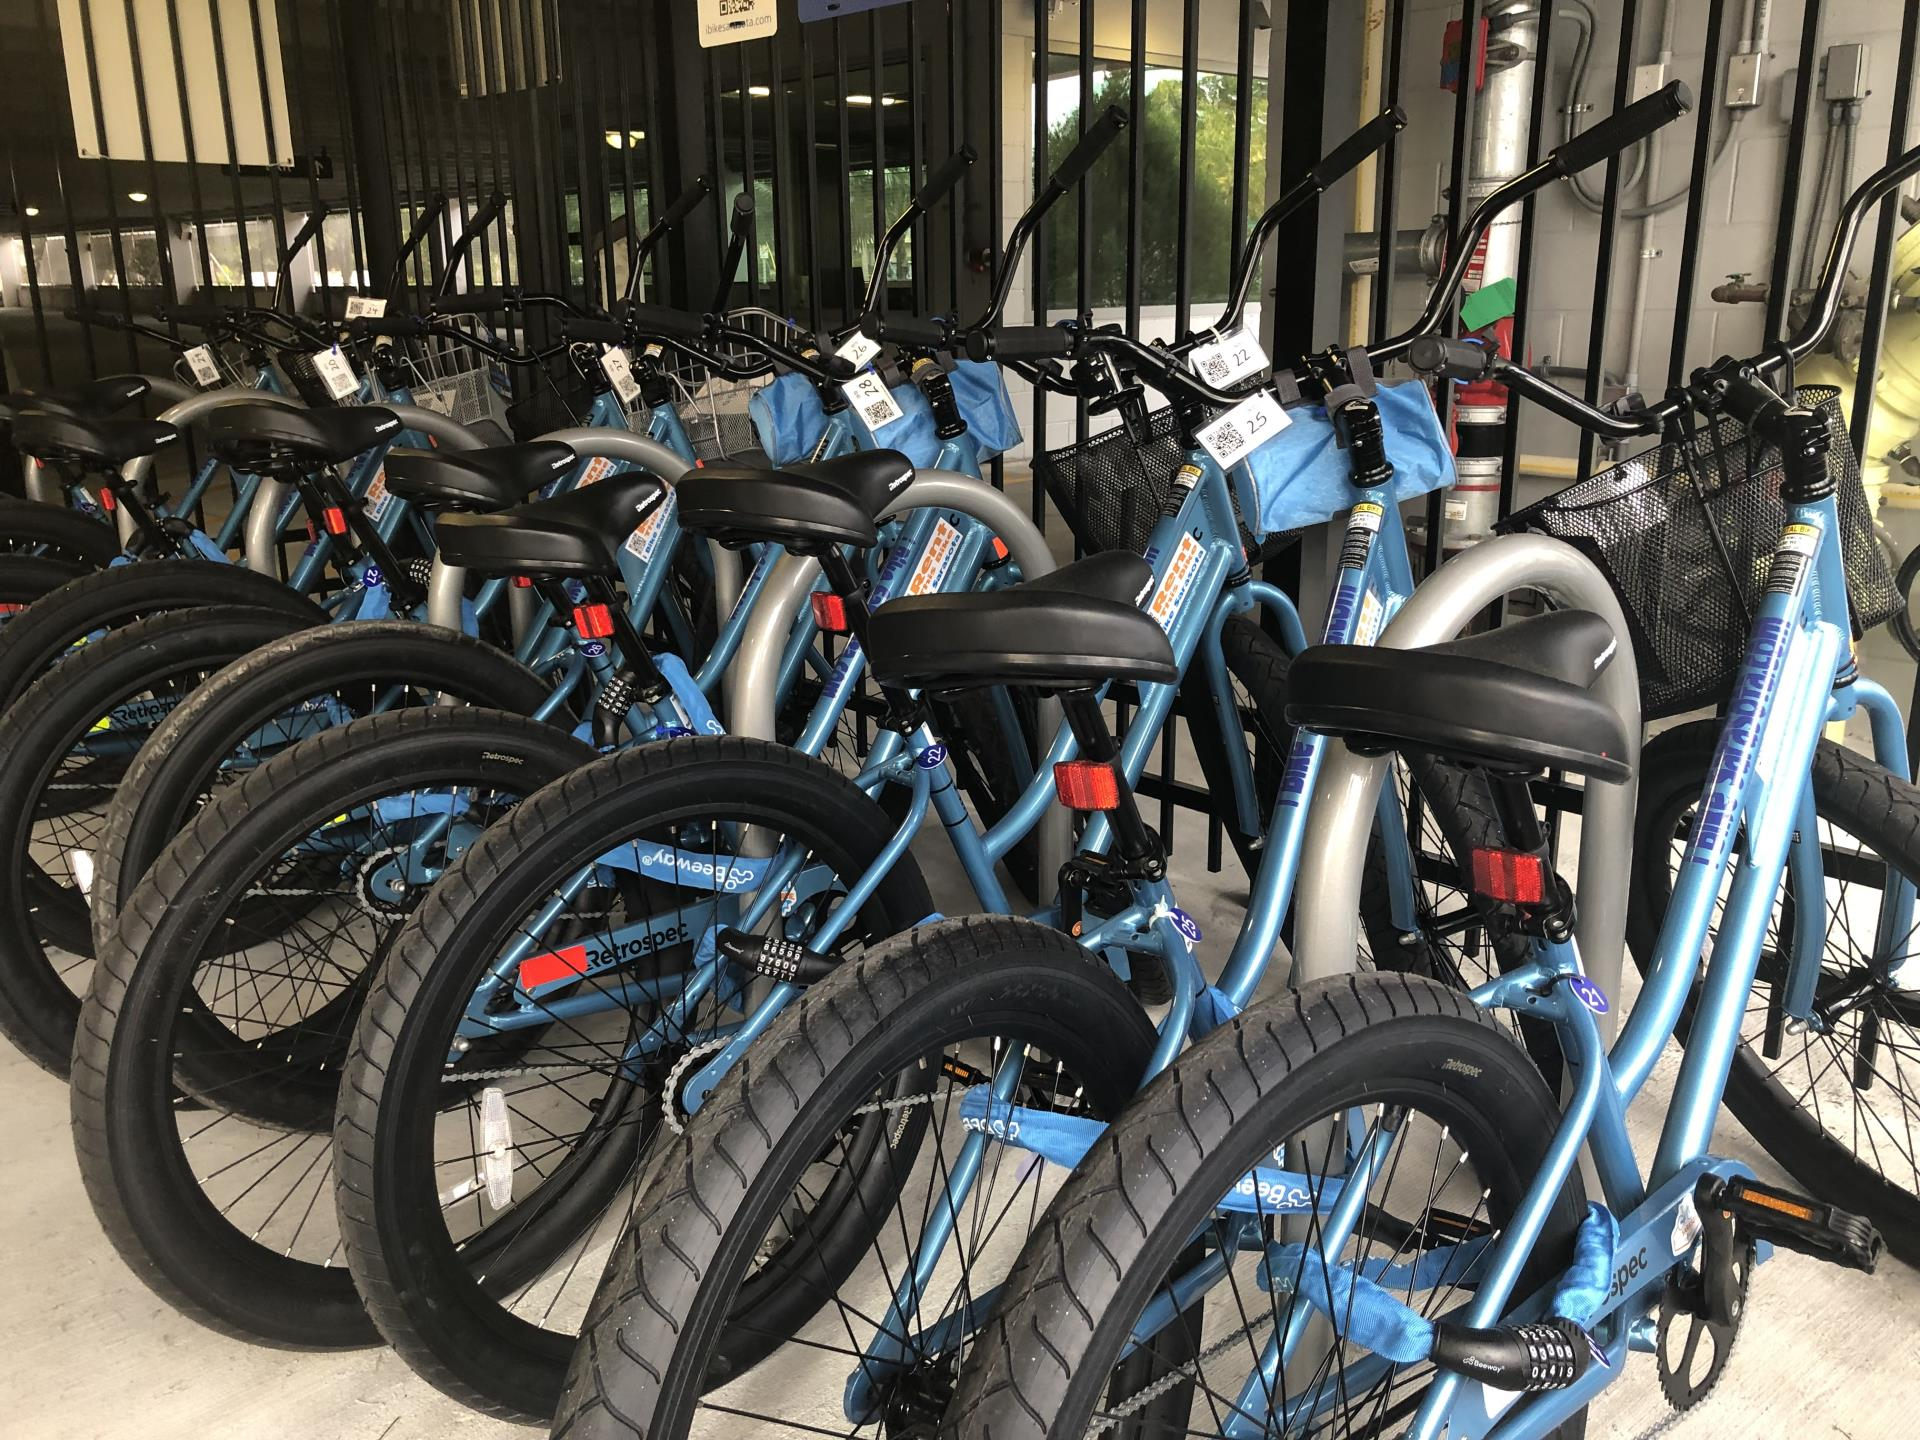 Bicycles available for rent at the St. Armands Garage